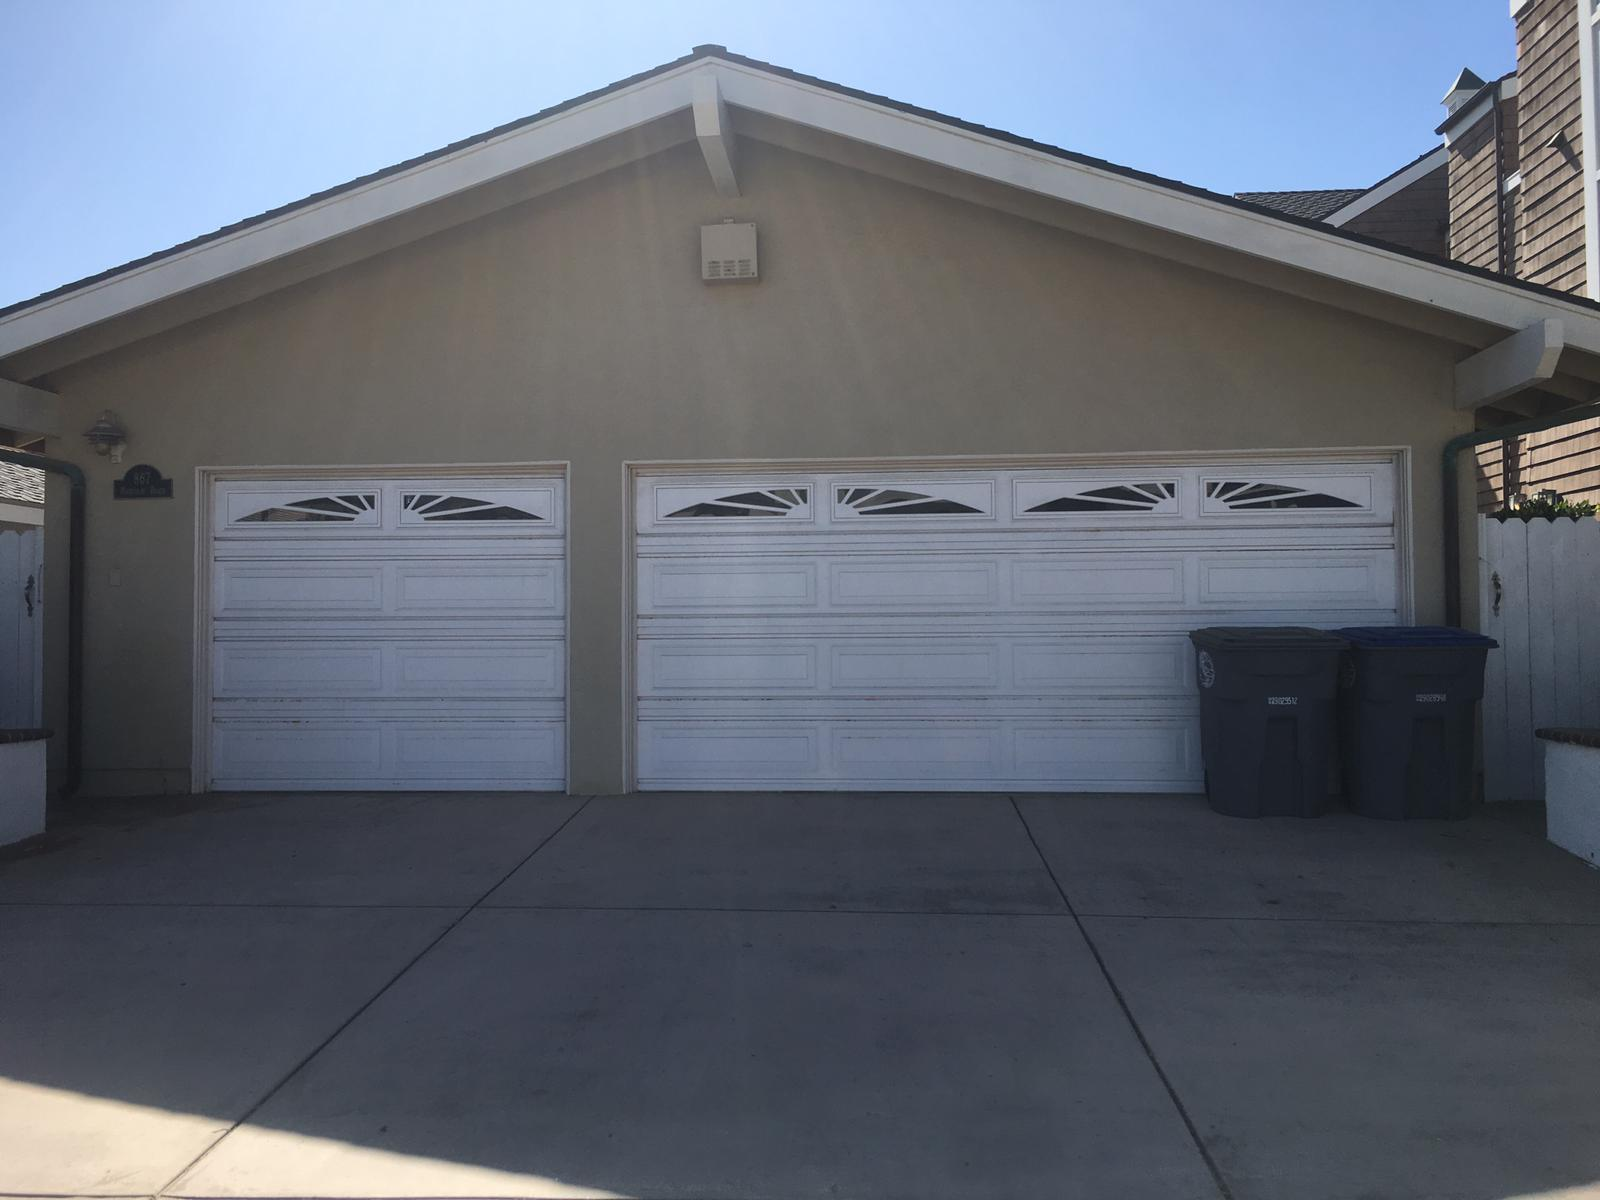 Garage Door Repair Drytown, Escalon